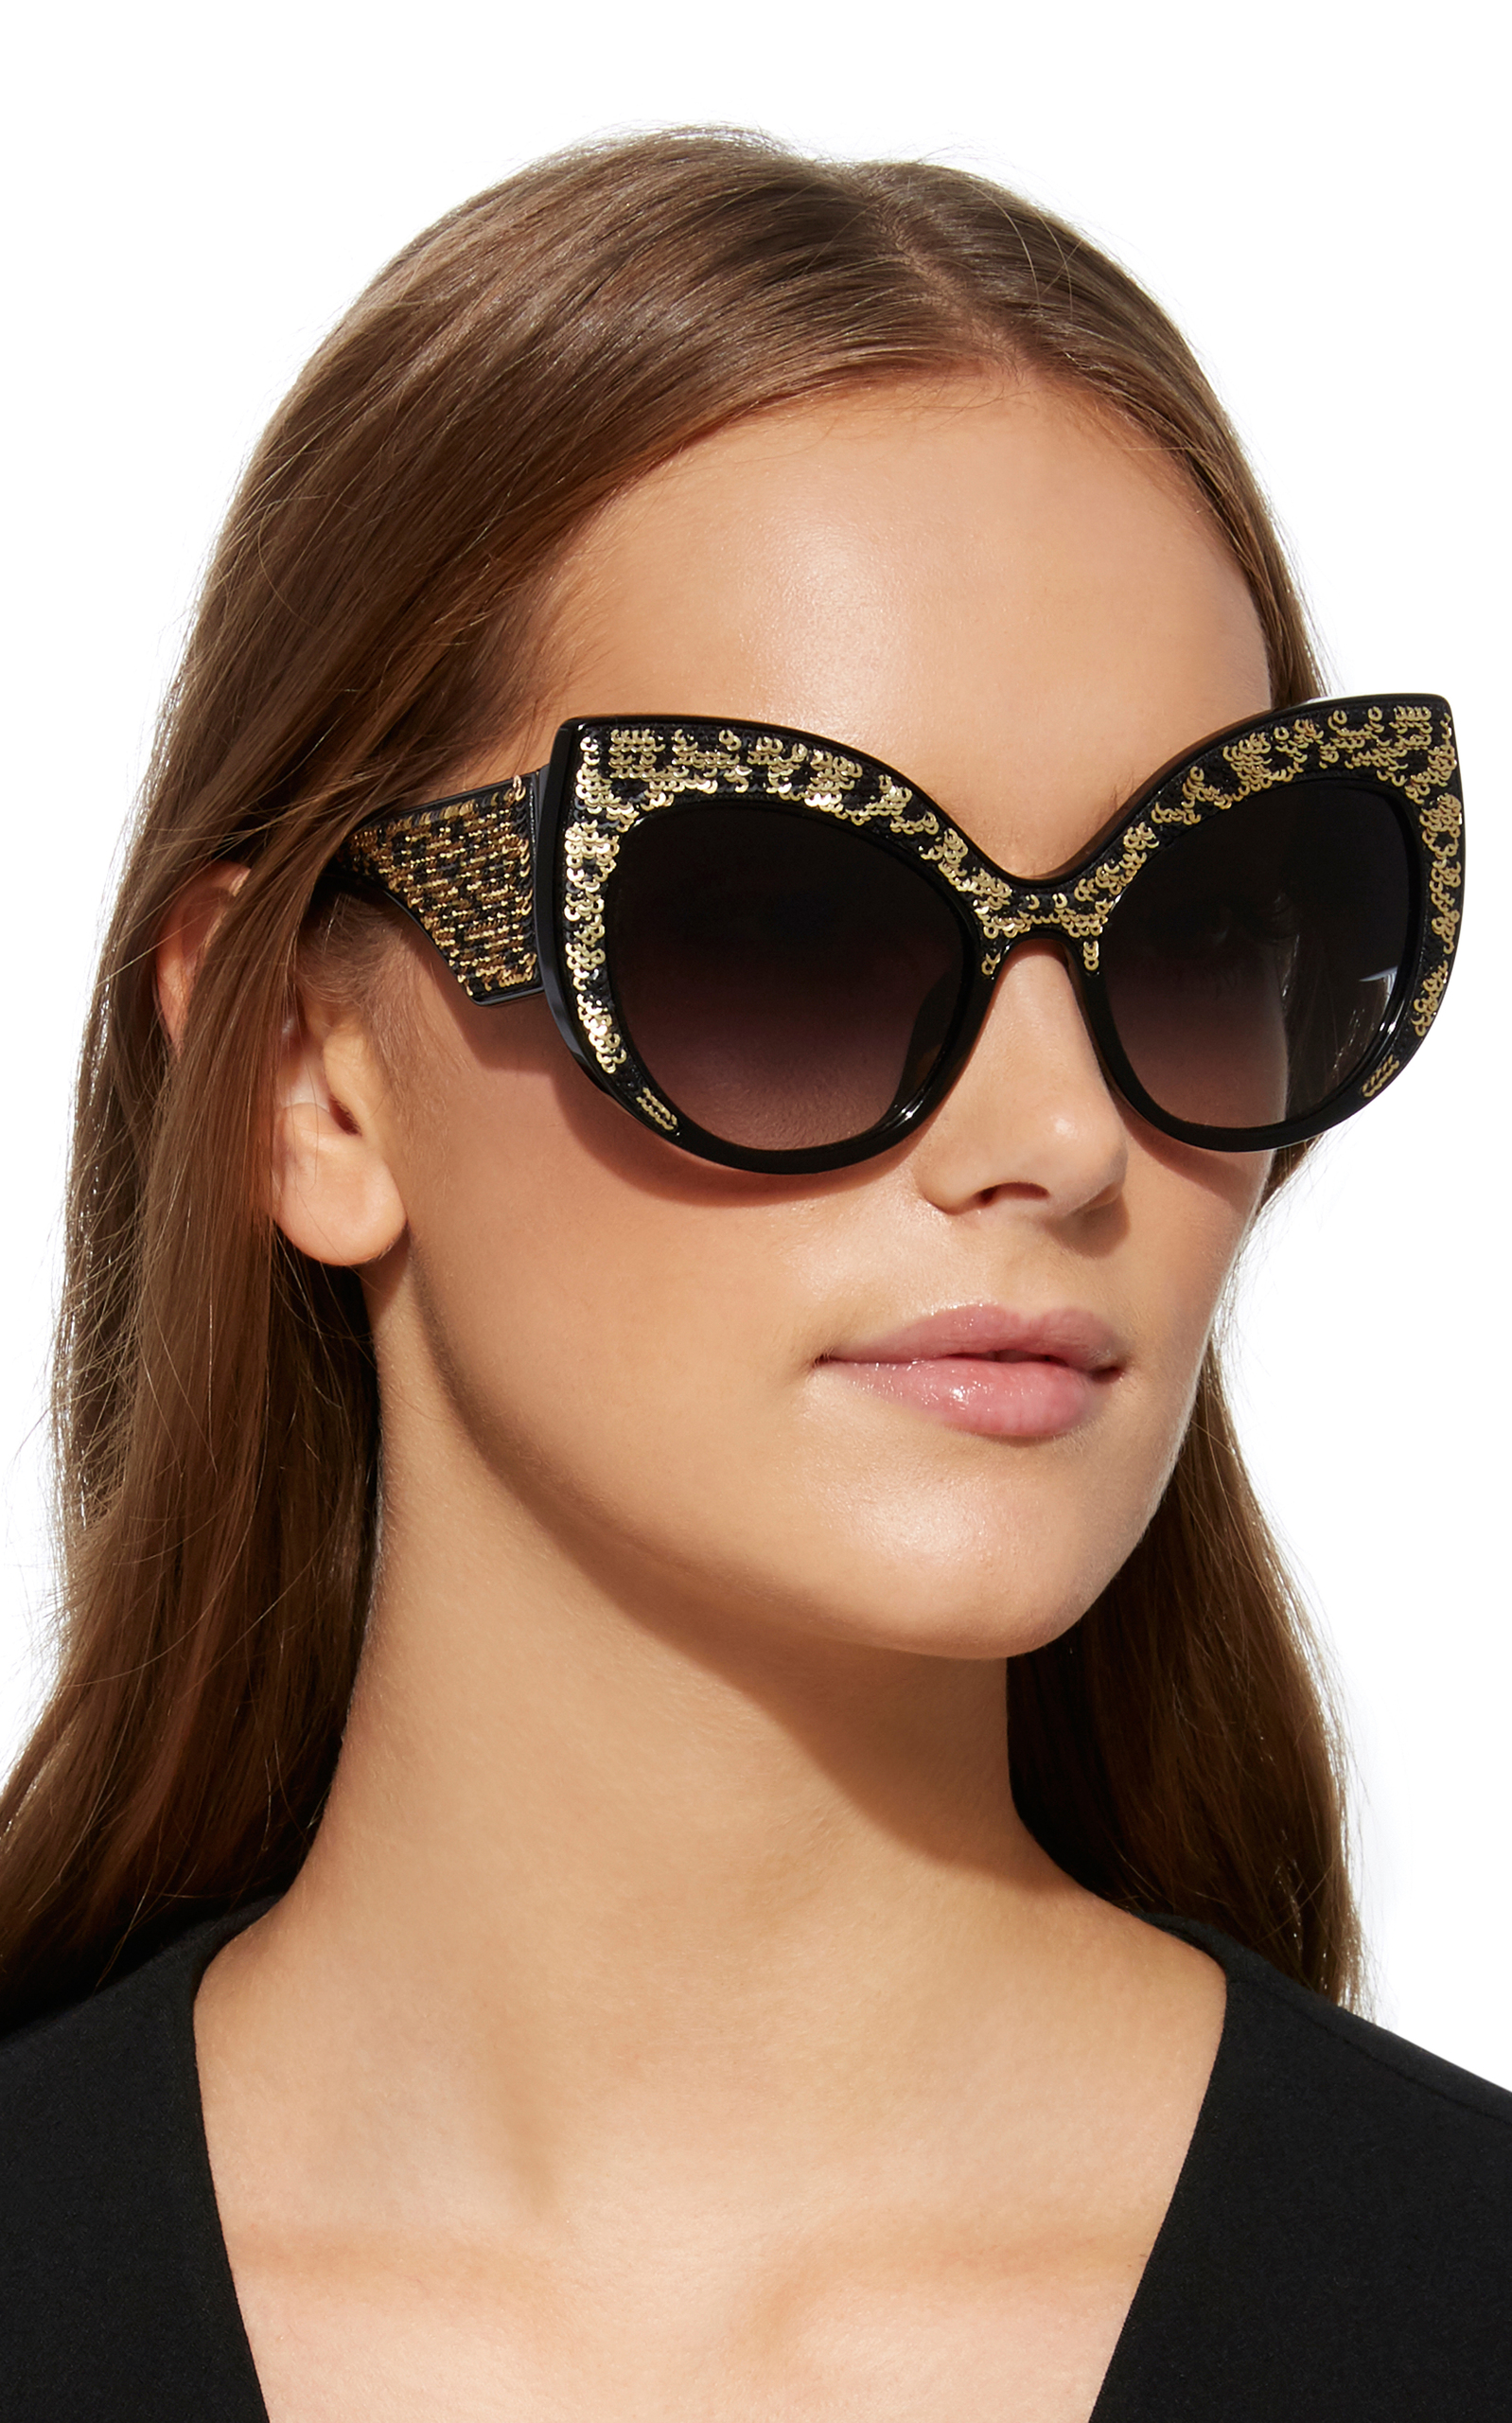 4e86e617b30b Dolce & GabbanaLeo Leopard-Print Acetate Cat-Eye Sunglasses. CLOSE. Loading